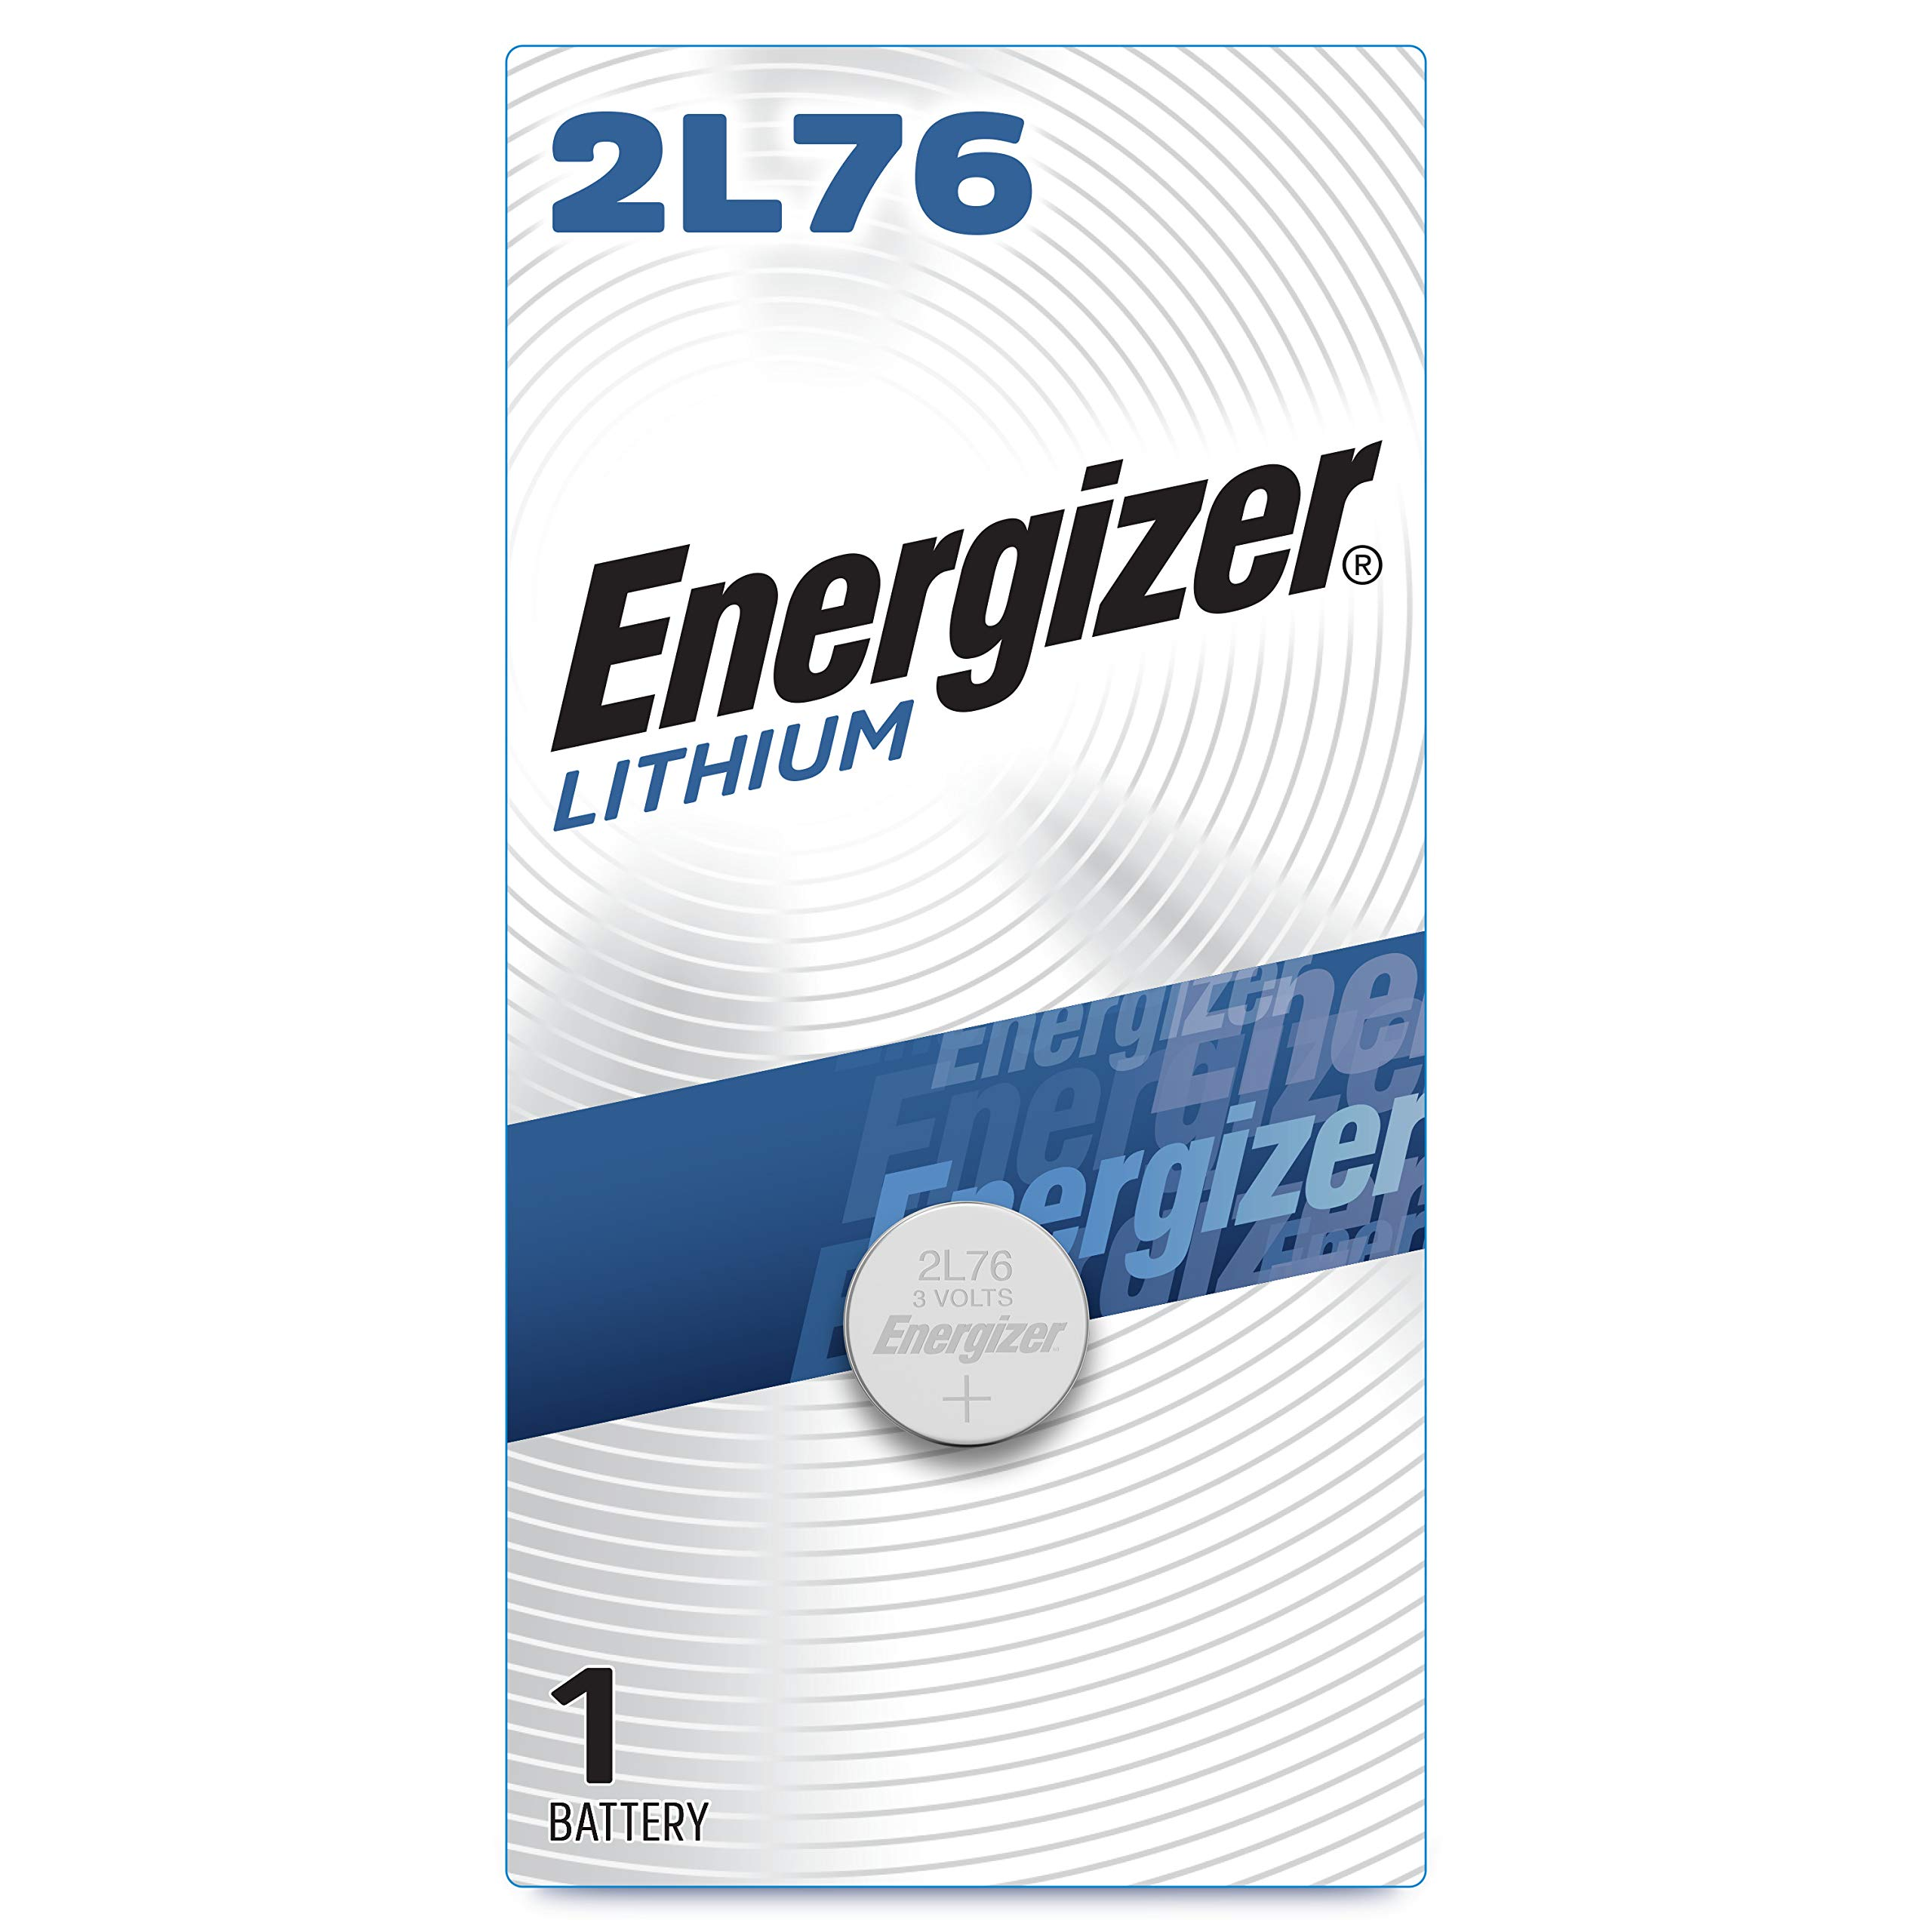 Energizer Lithium 2L76 Batteries (1 Battery Count)